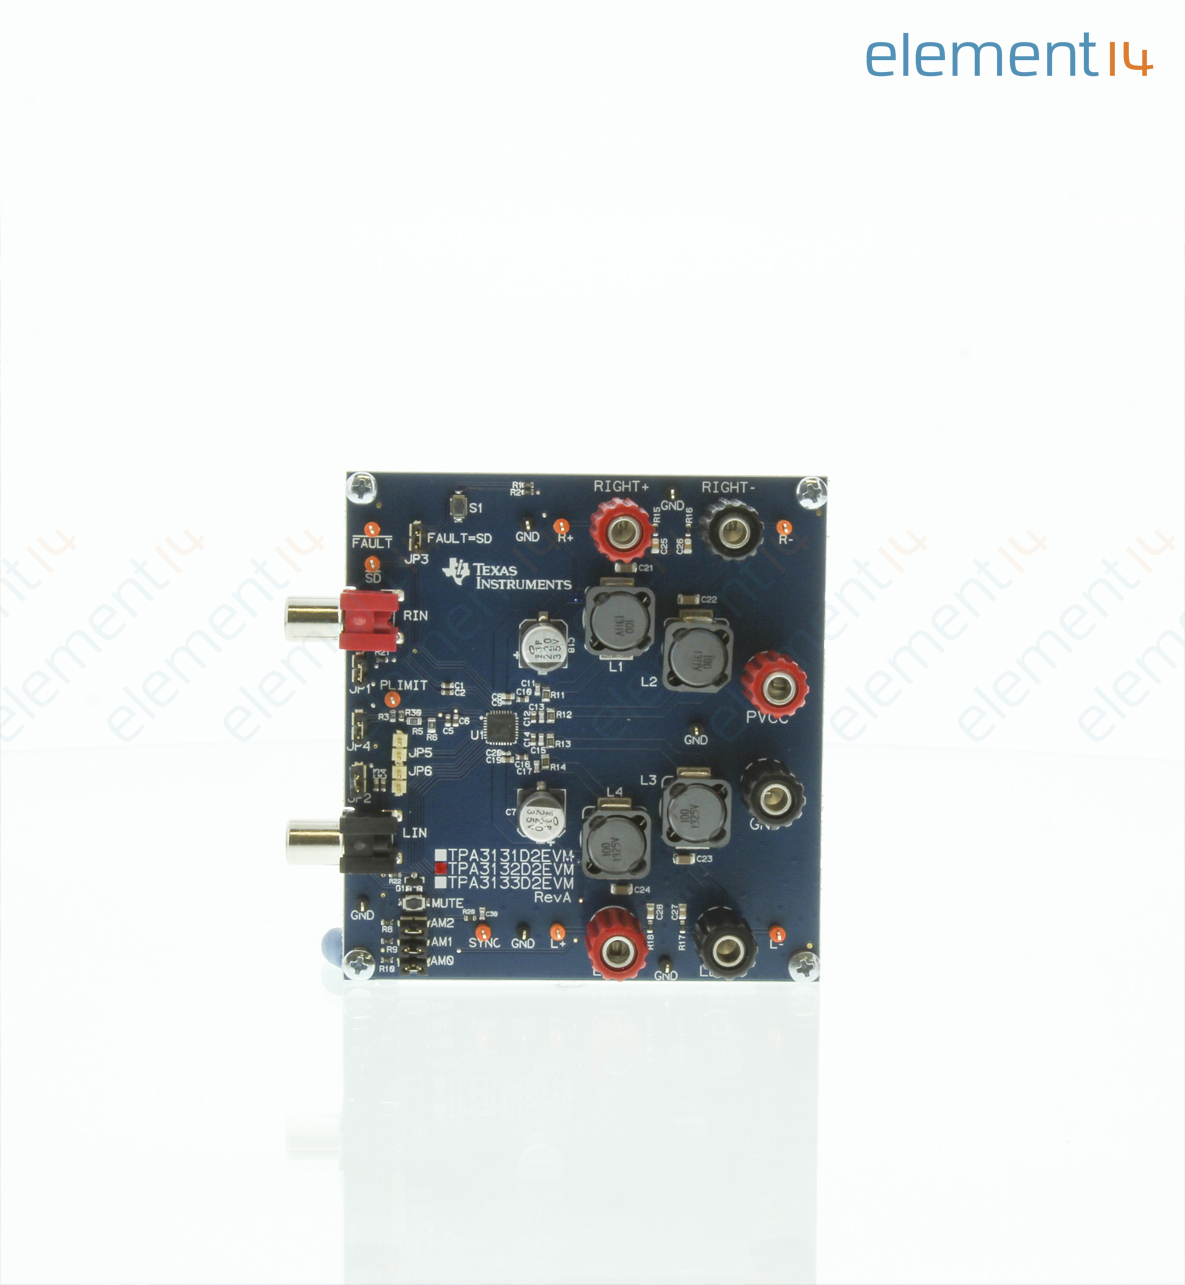 Tpa3132d2evm Texas Instruments Evaluation Module Tpa3132d2 25w Audio Amplifier Circuit Filter Free Class D Stereo And Mono Modes